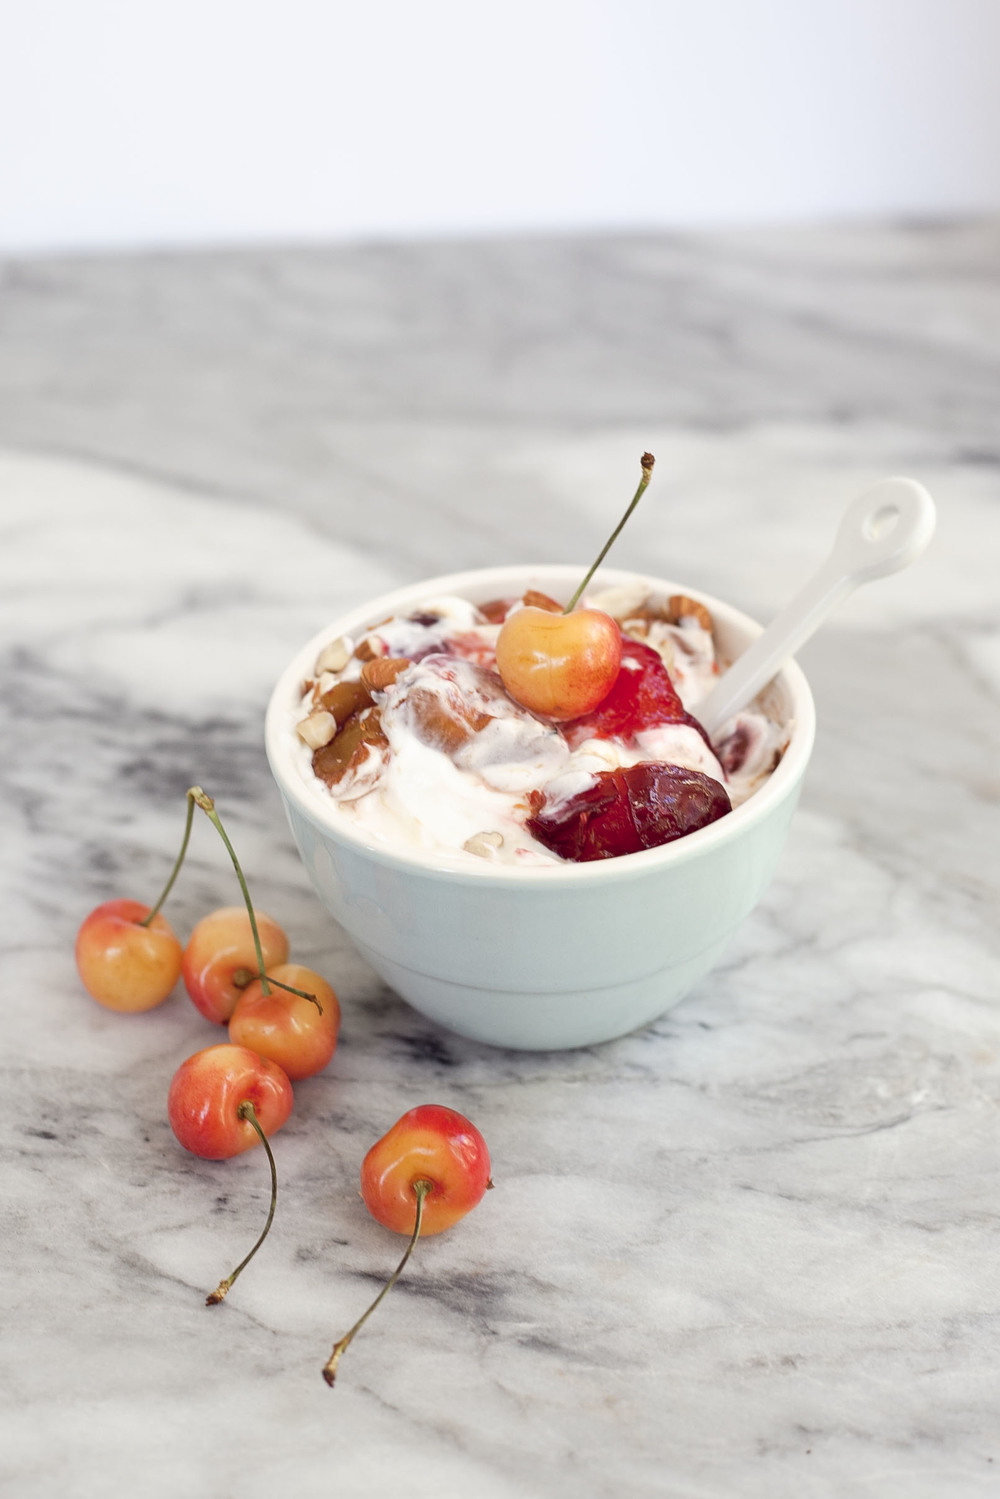 Roasted Cherries and plums with yogurt